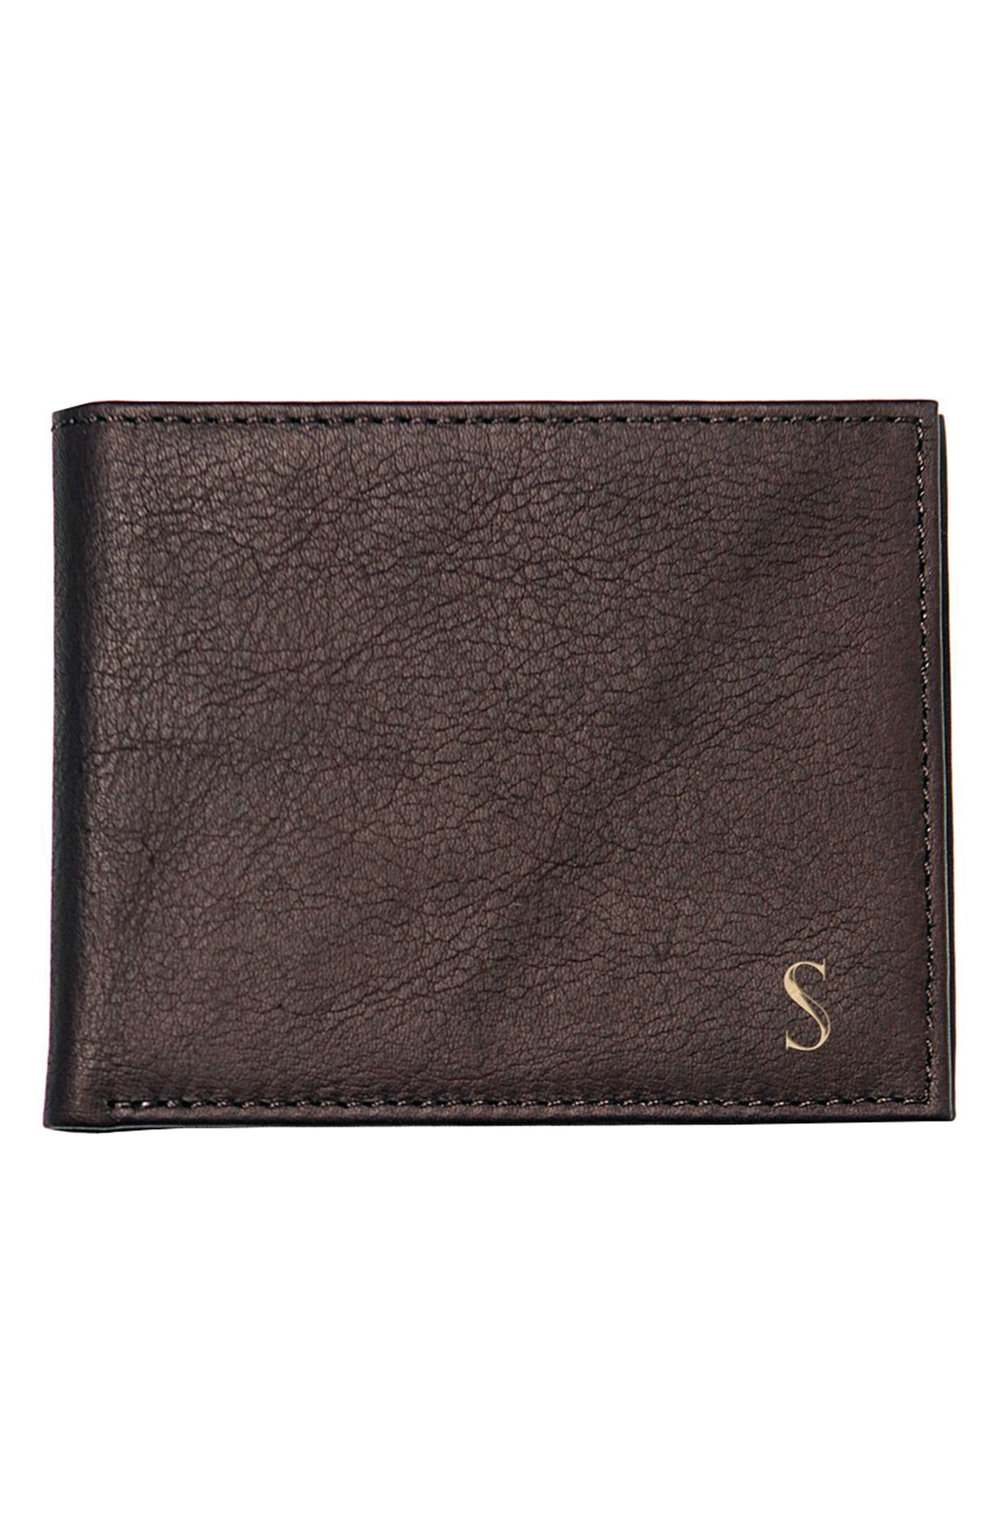 6.Monogram Bifold Wallet by Cathy's Concepts ‬$53,  nordstrom.com